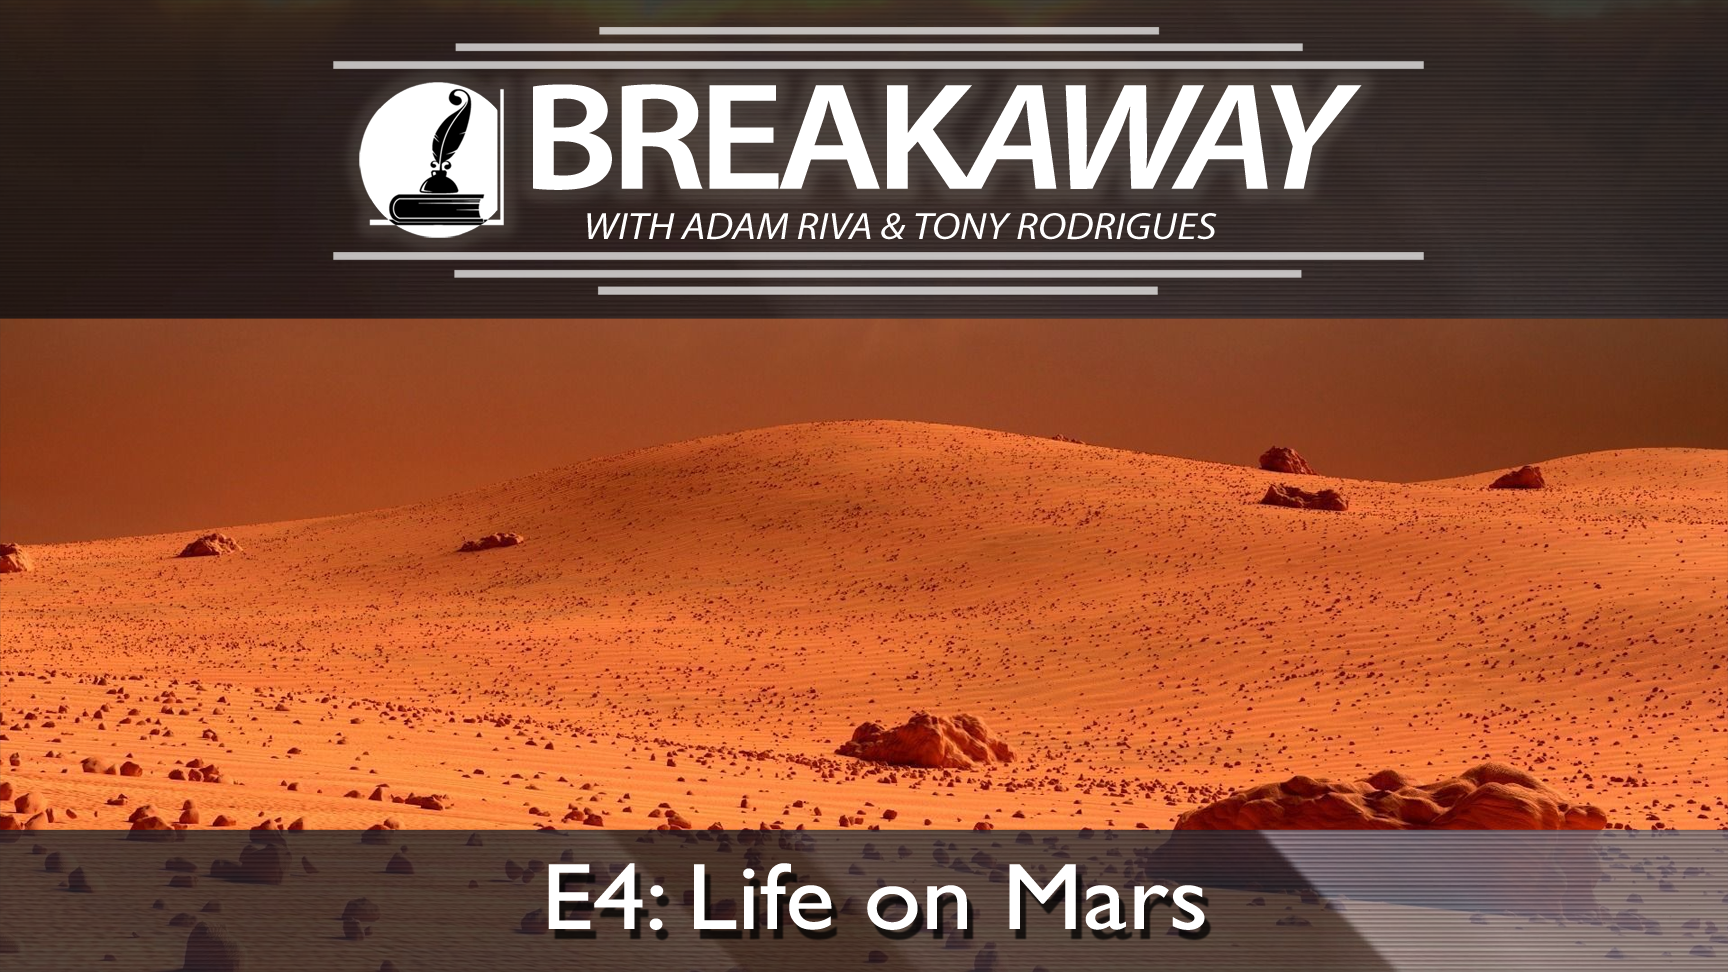 #4 BREAKAWAY | Life on Mars